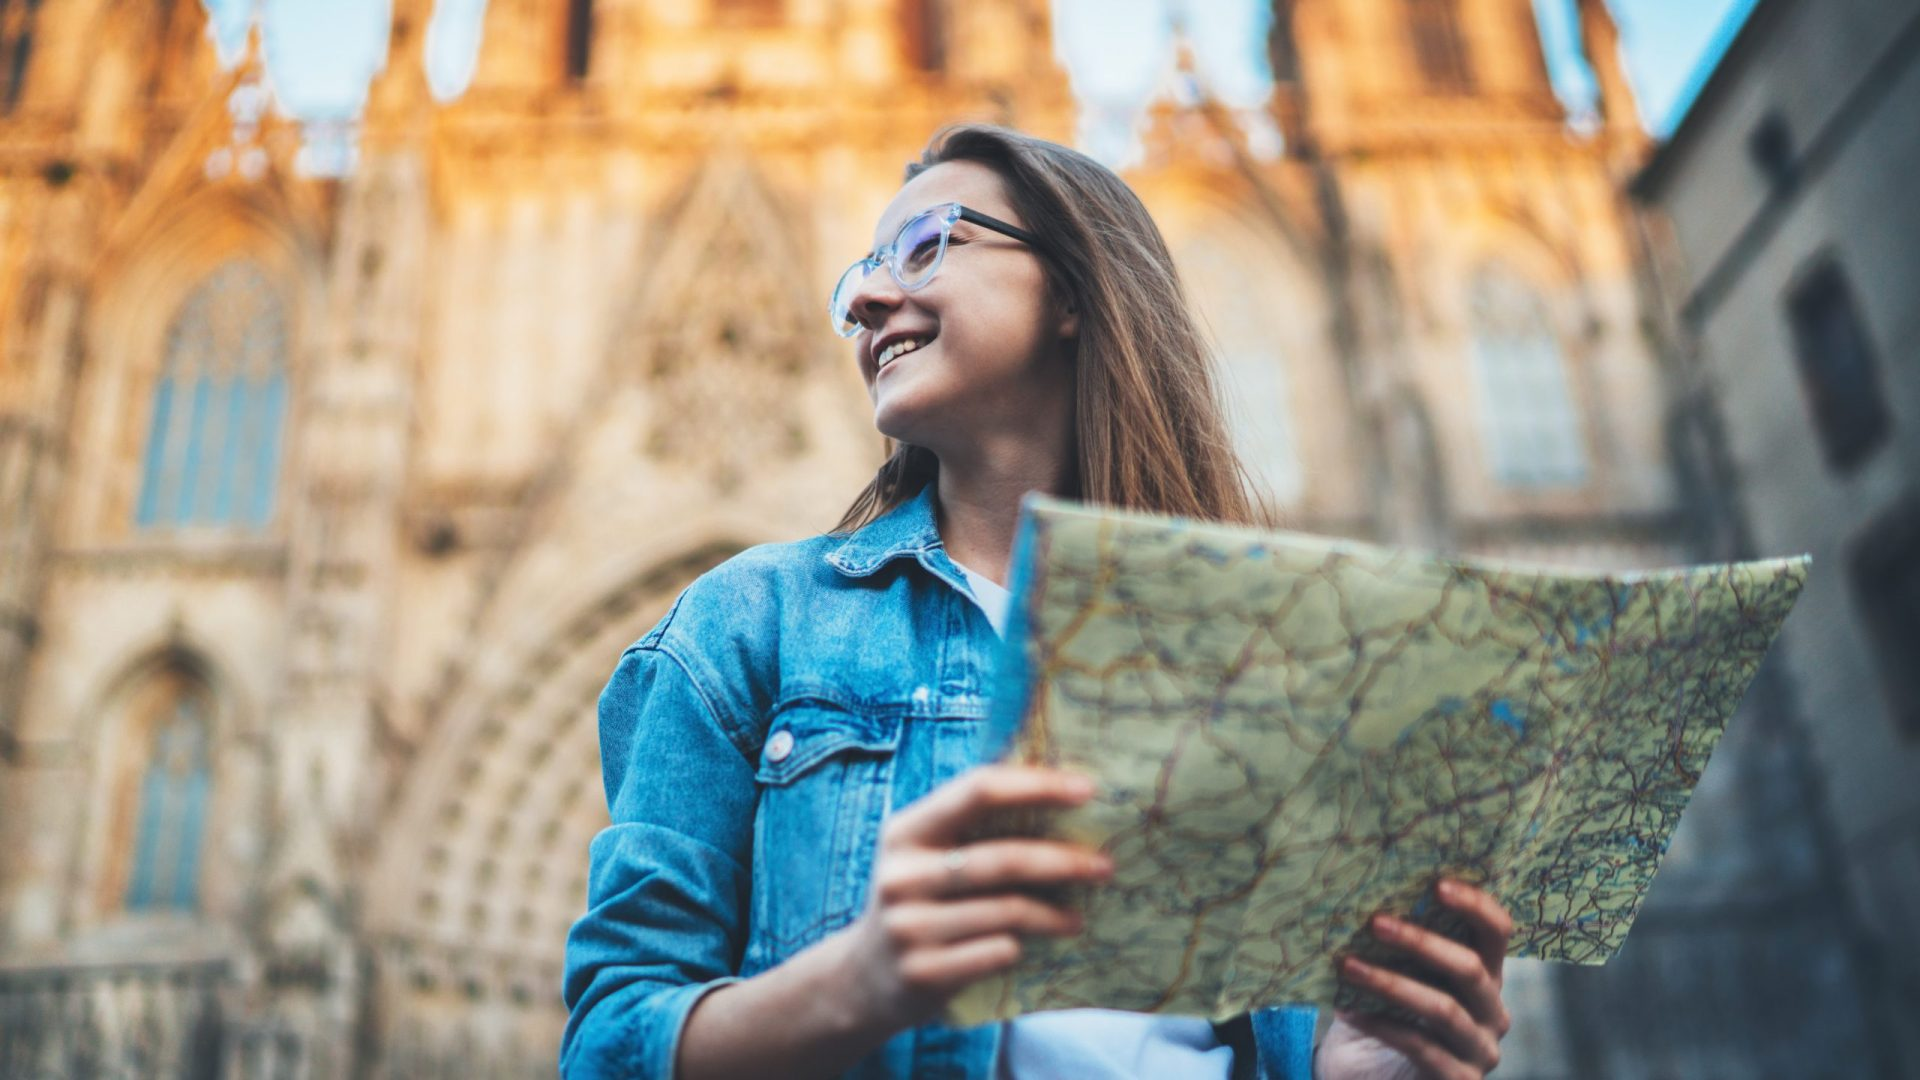 Happy,Smiling,Young,Woman,Exploring,Historical,Landmarks,Of,Barcelona,,Happy